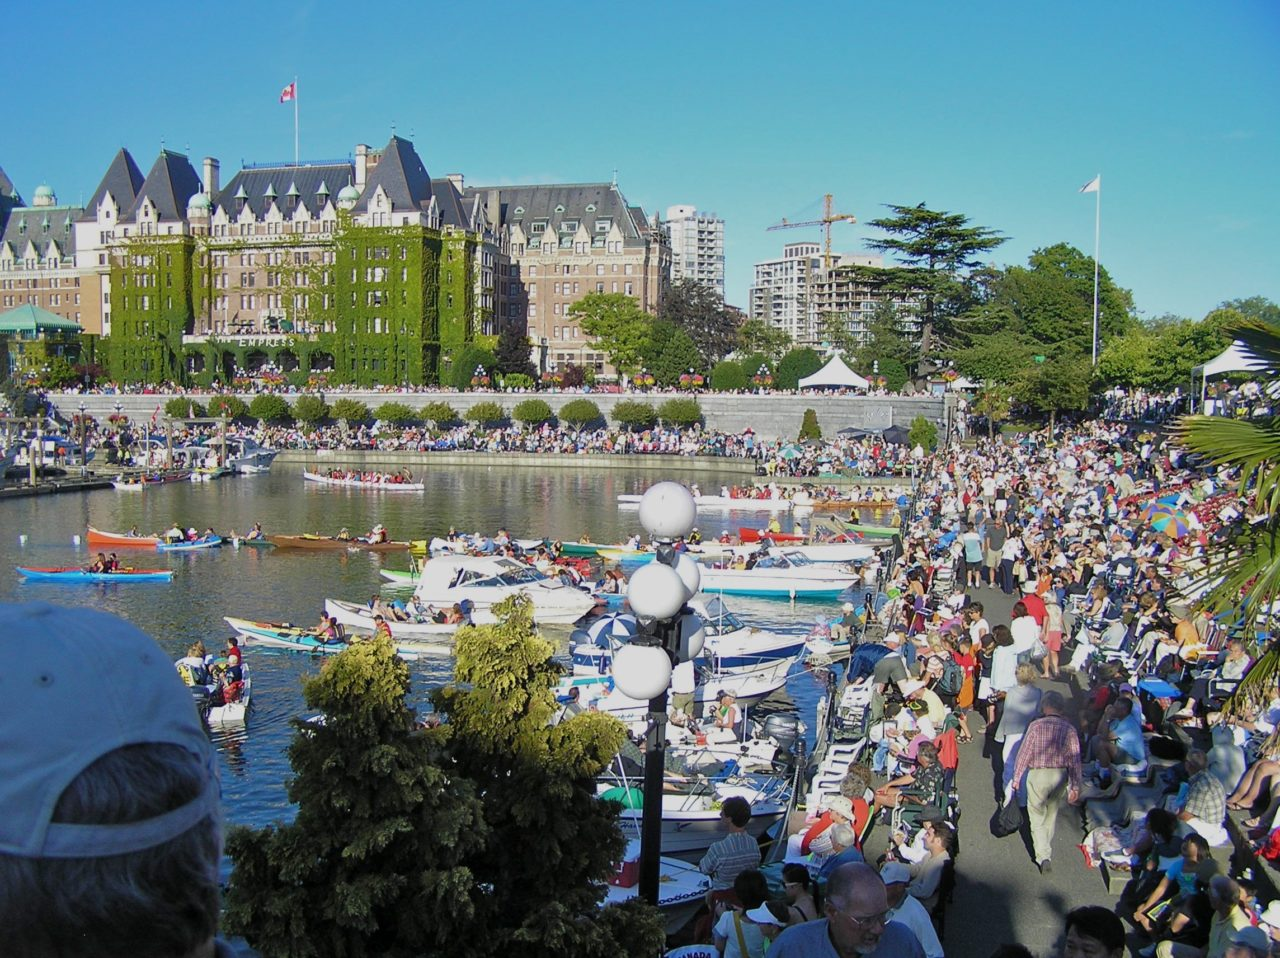 "Victoria Symphony ""Splash"" Event. Kayakers enjoy a day on the water with the Symphony playing in the background."